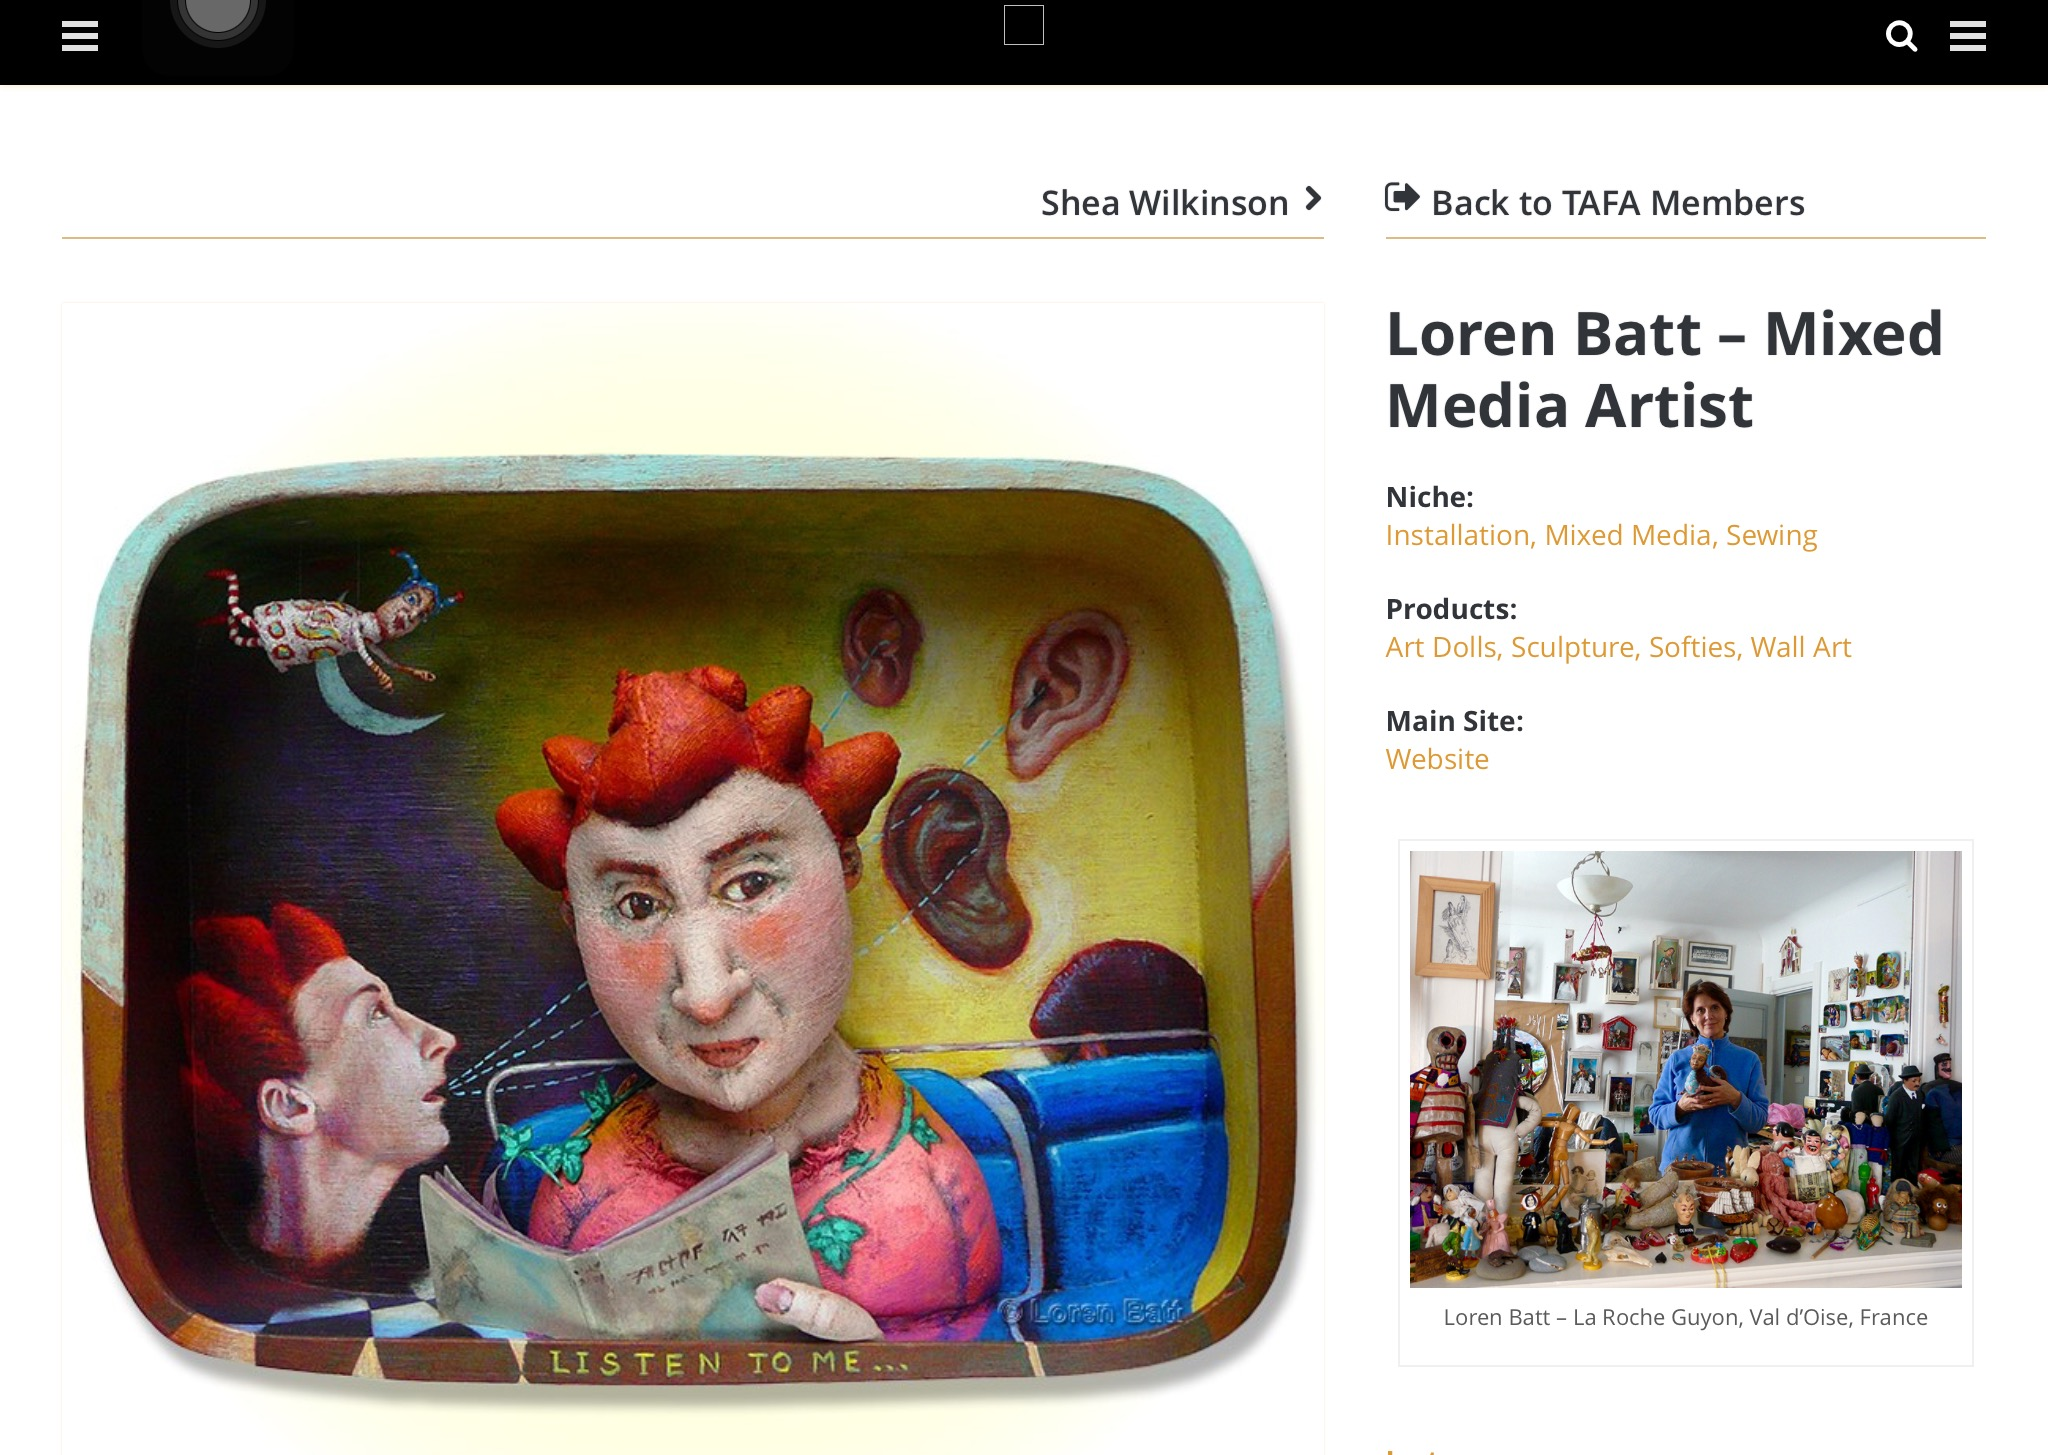 Loren Batt profile for TAFA list